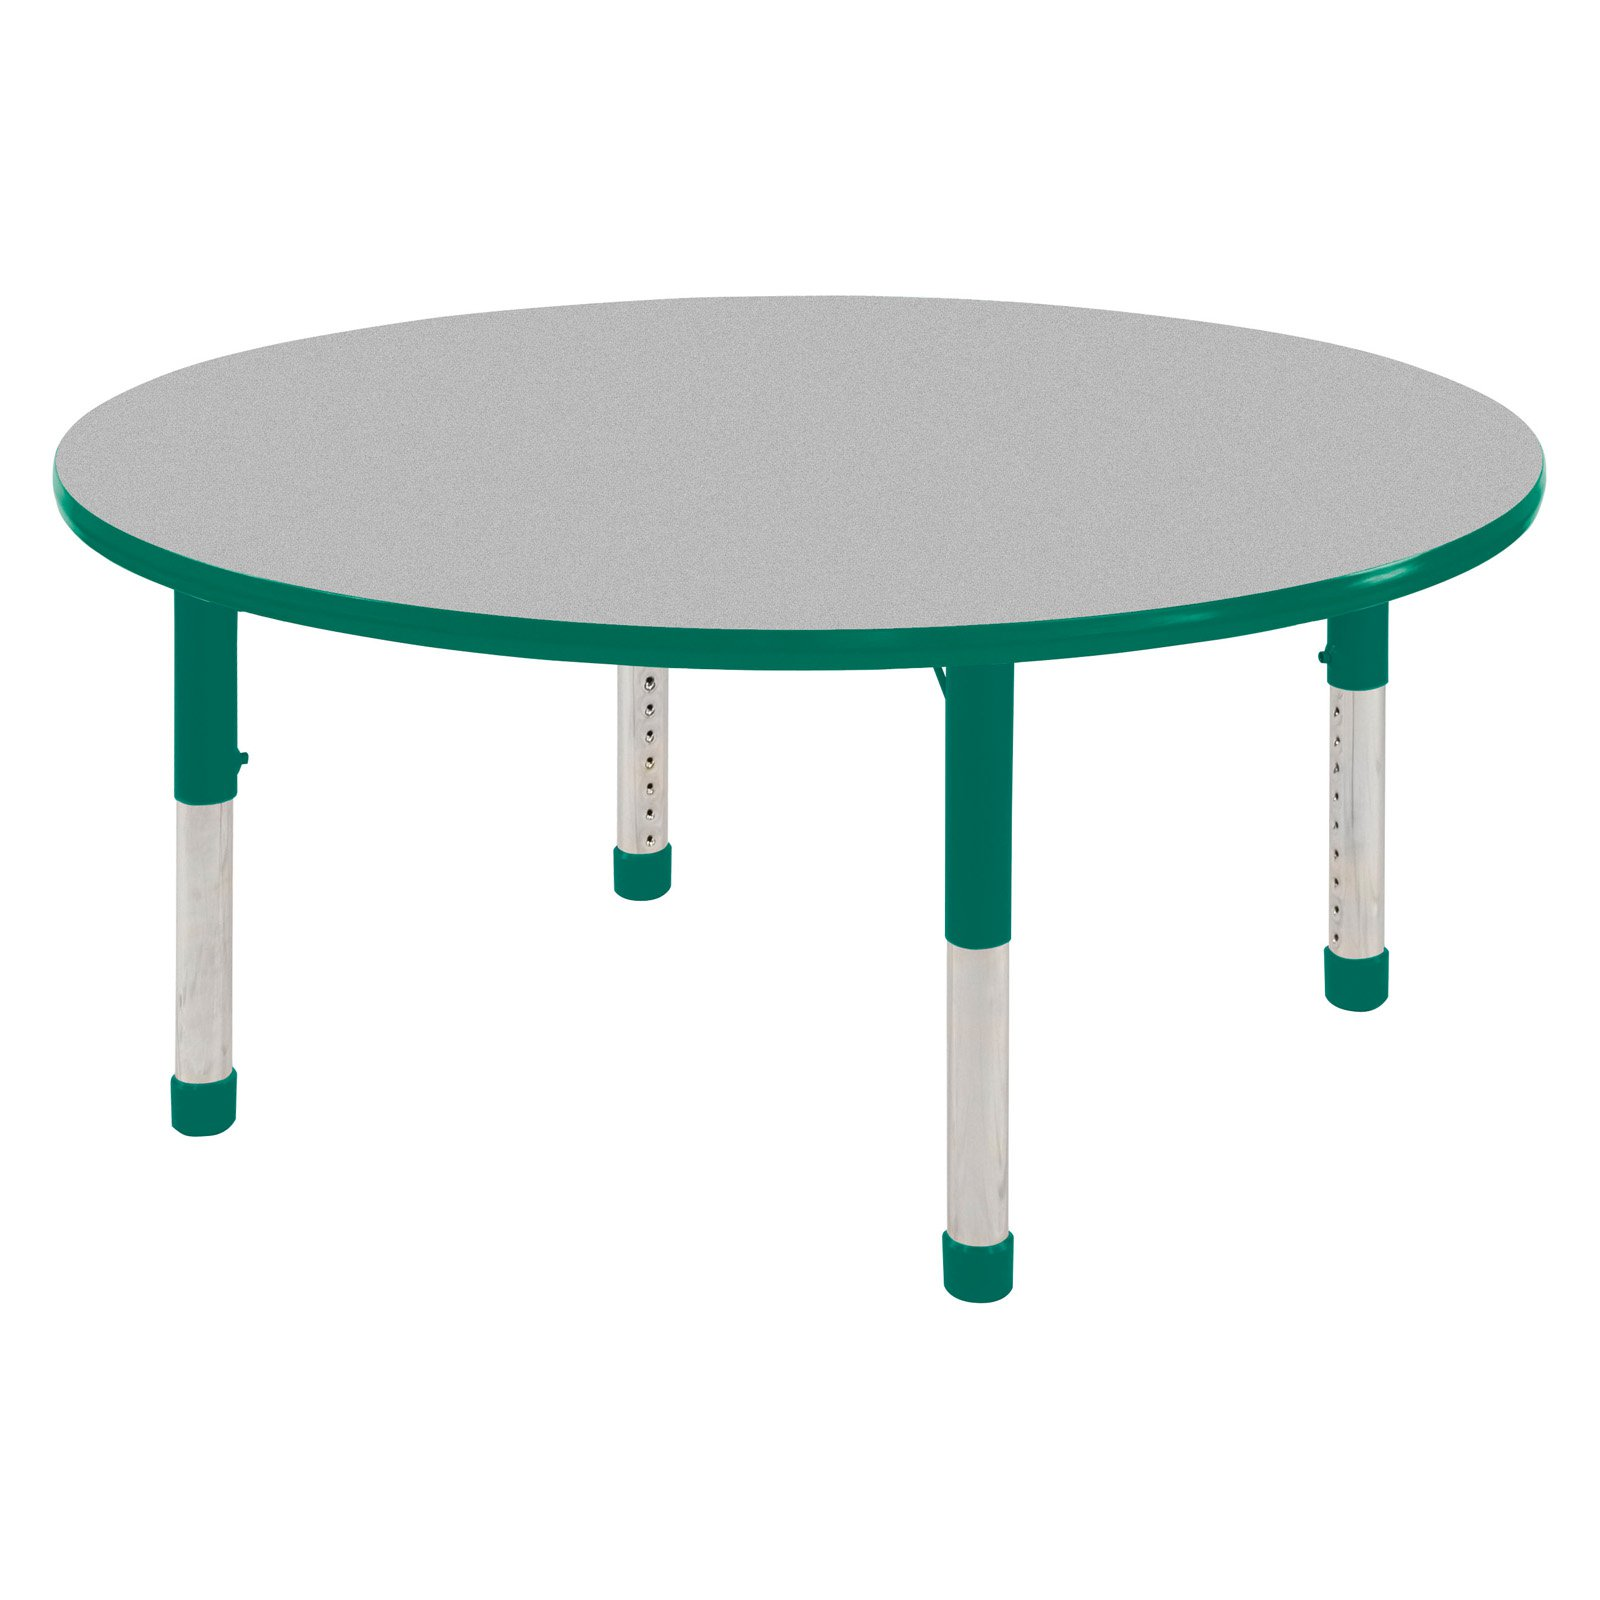 ECR4KIDS 48 in. Gray Top Round Adjustable Activity Table - Chunky